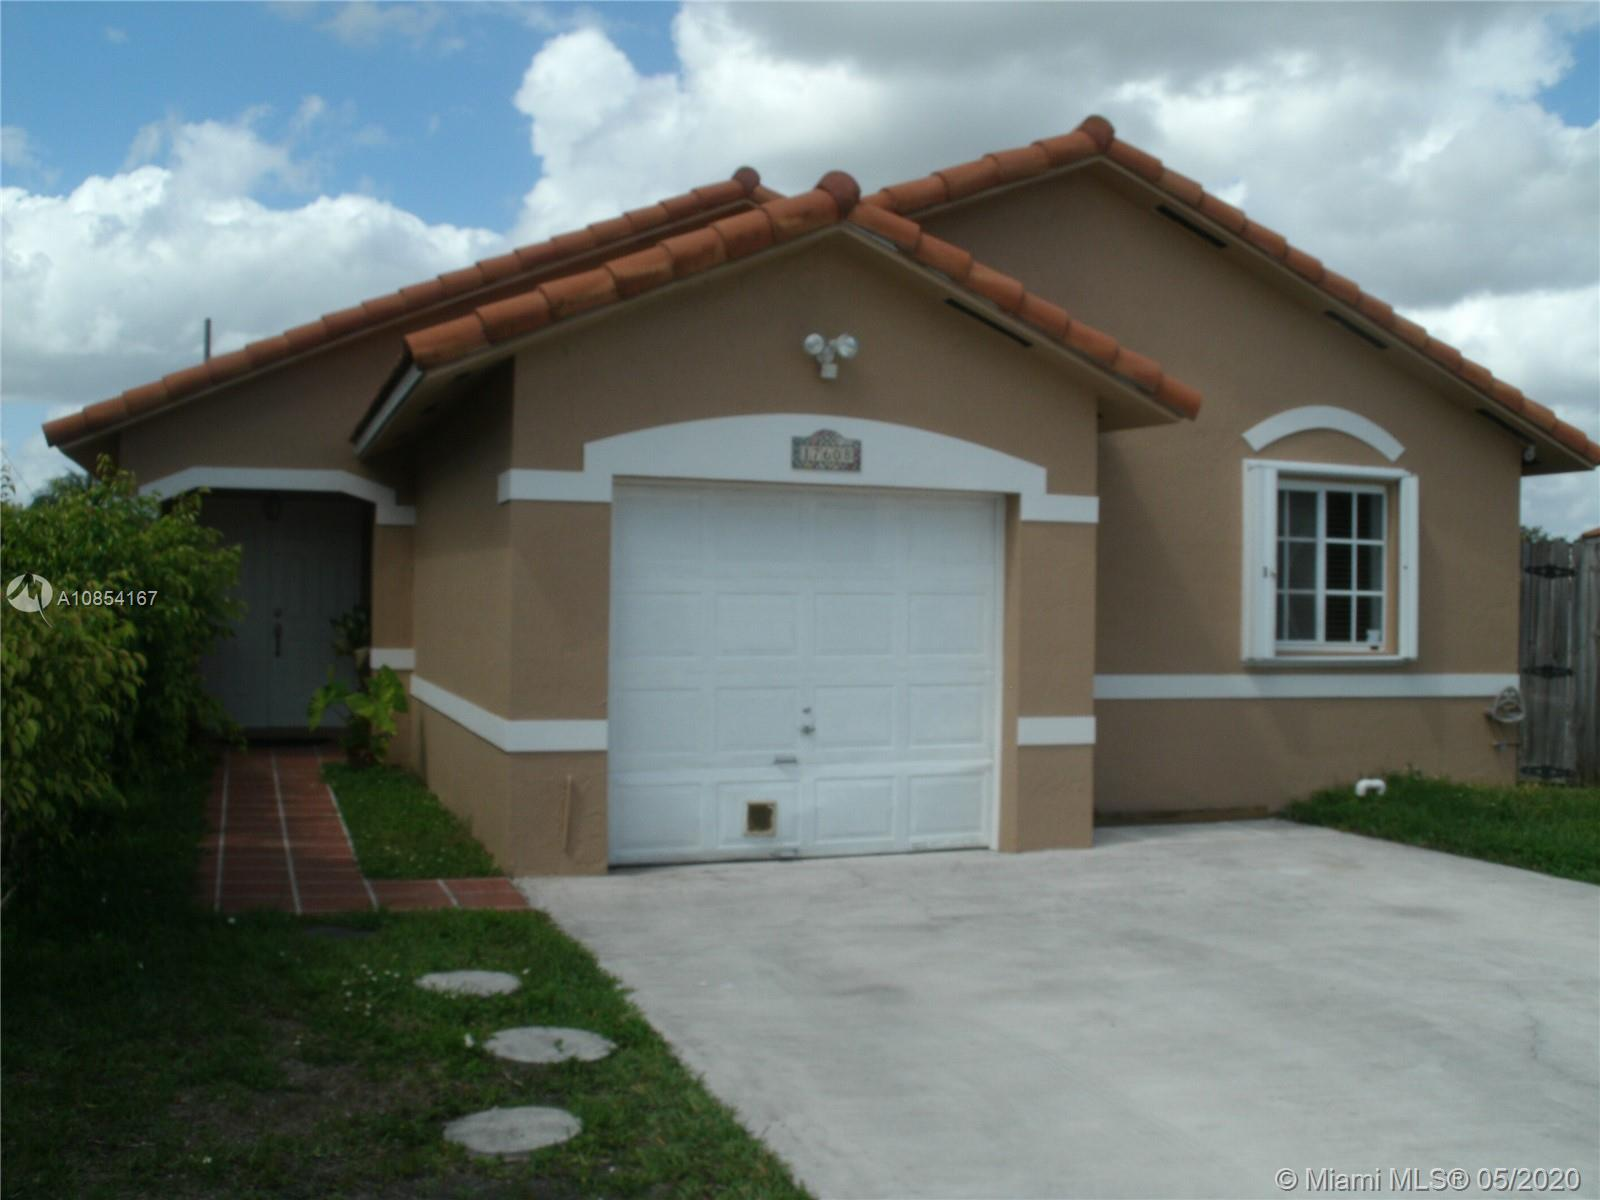 17608 SW 144th Ave, Miami, Florida 33177, 4 Bedrooms Bedrooms, ,2 BathroomsBathrooms,Residential,For Sale,17608 SW 144th Ave,A10854167